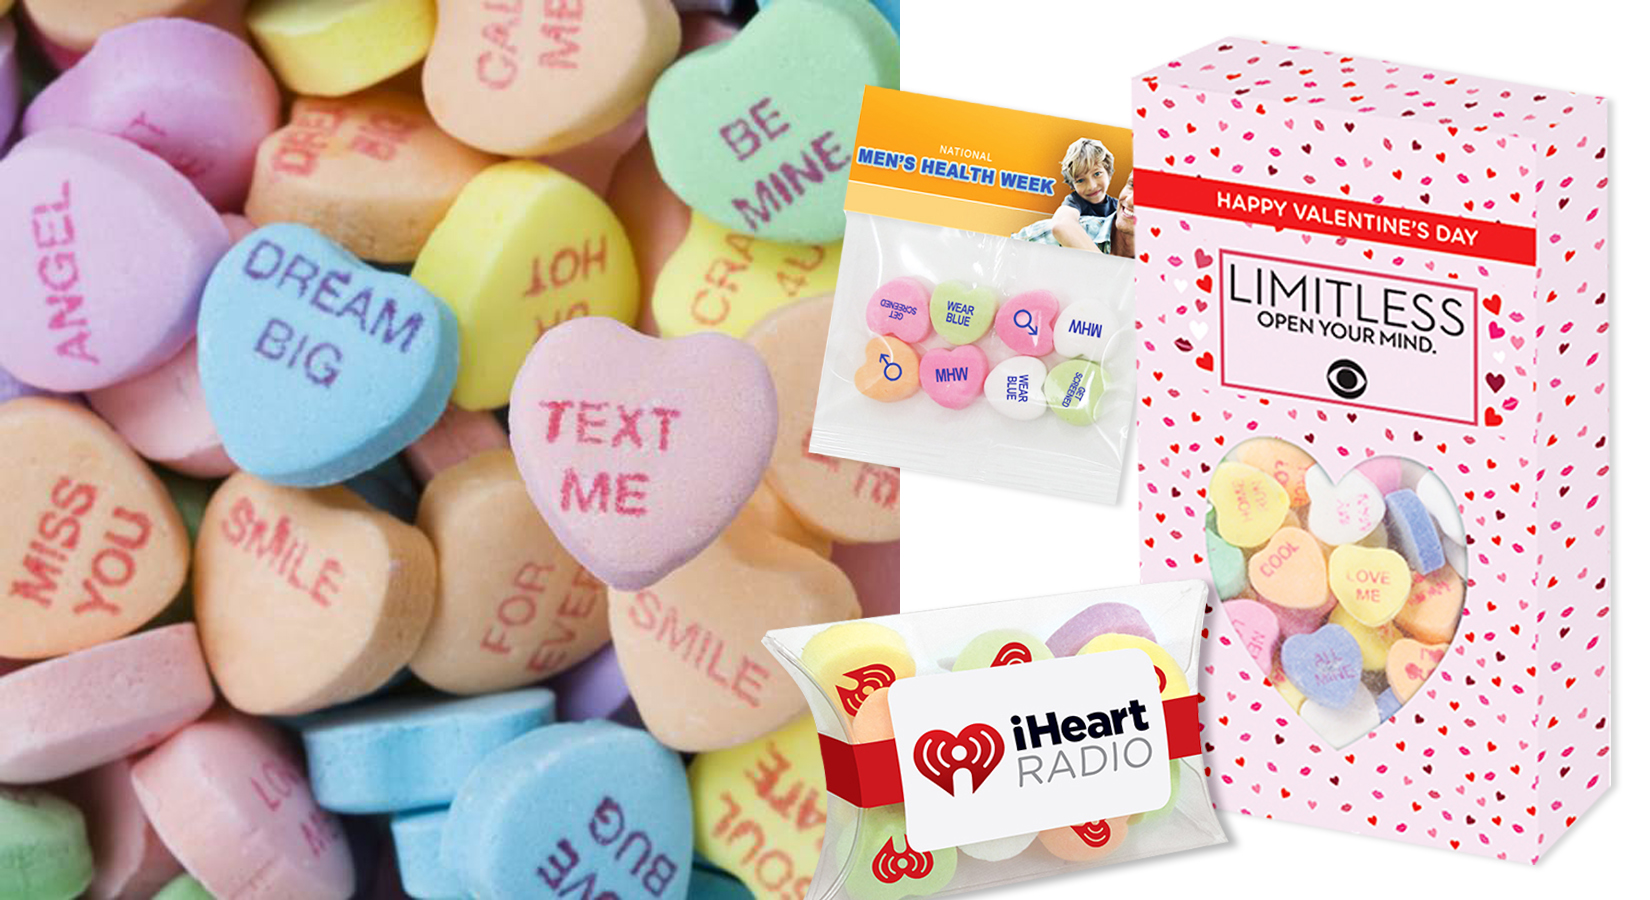 Sweethearts Candy Hearts Are Not Available This Valentine's Day for the First Time in 153 Years – But We Can Still Get Them!